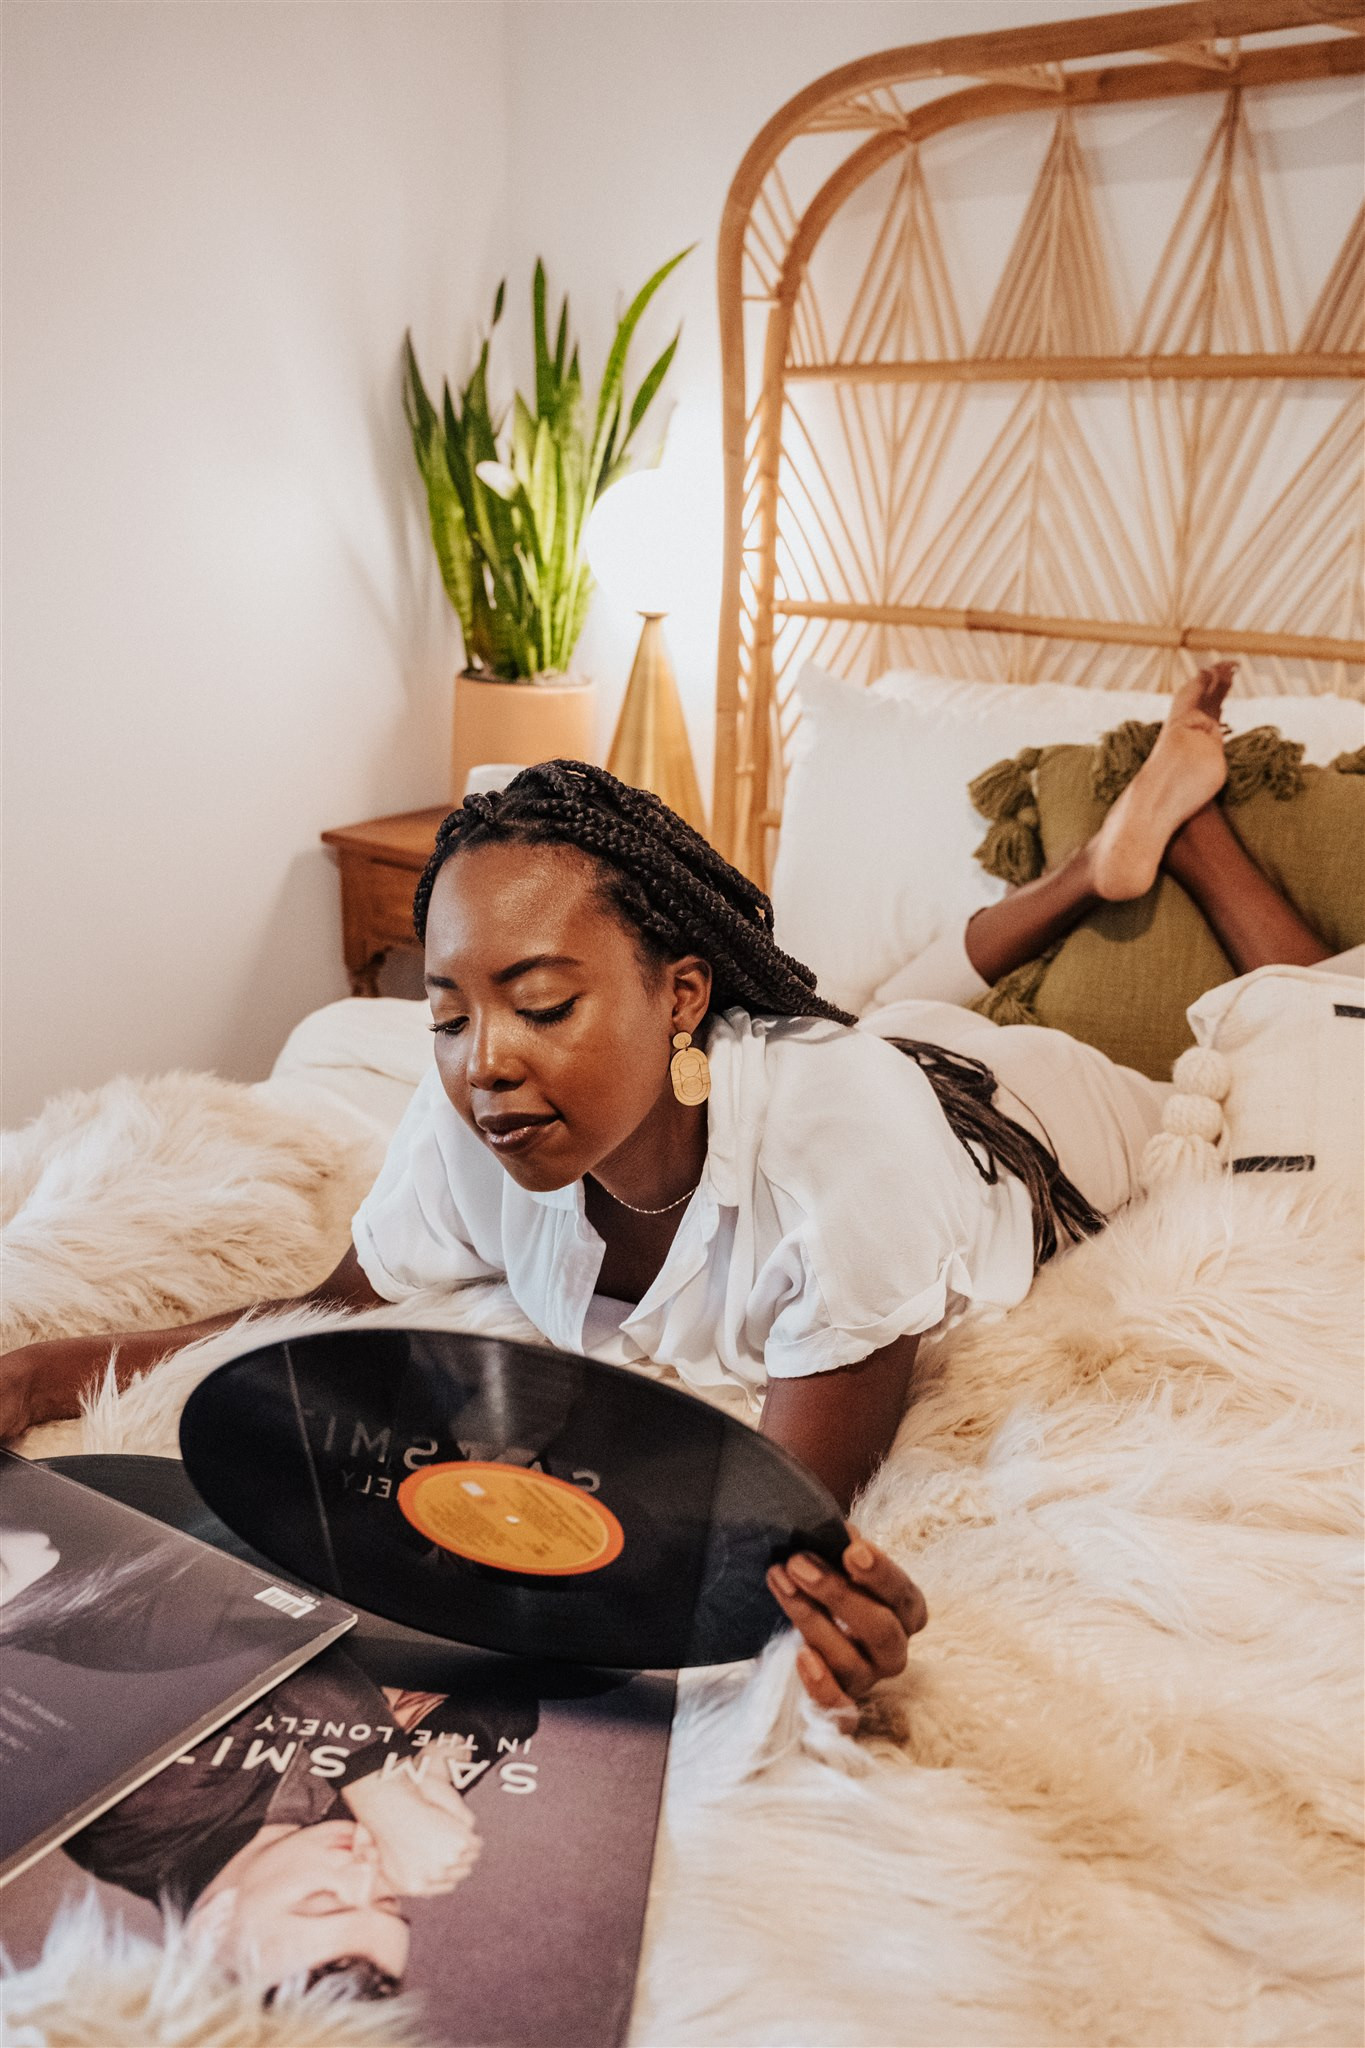 women with vinyl on a bed with dangle earrings